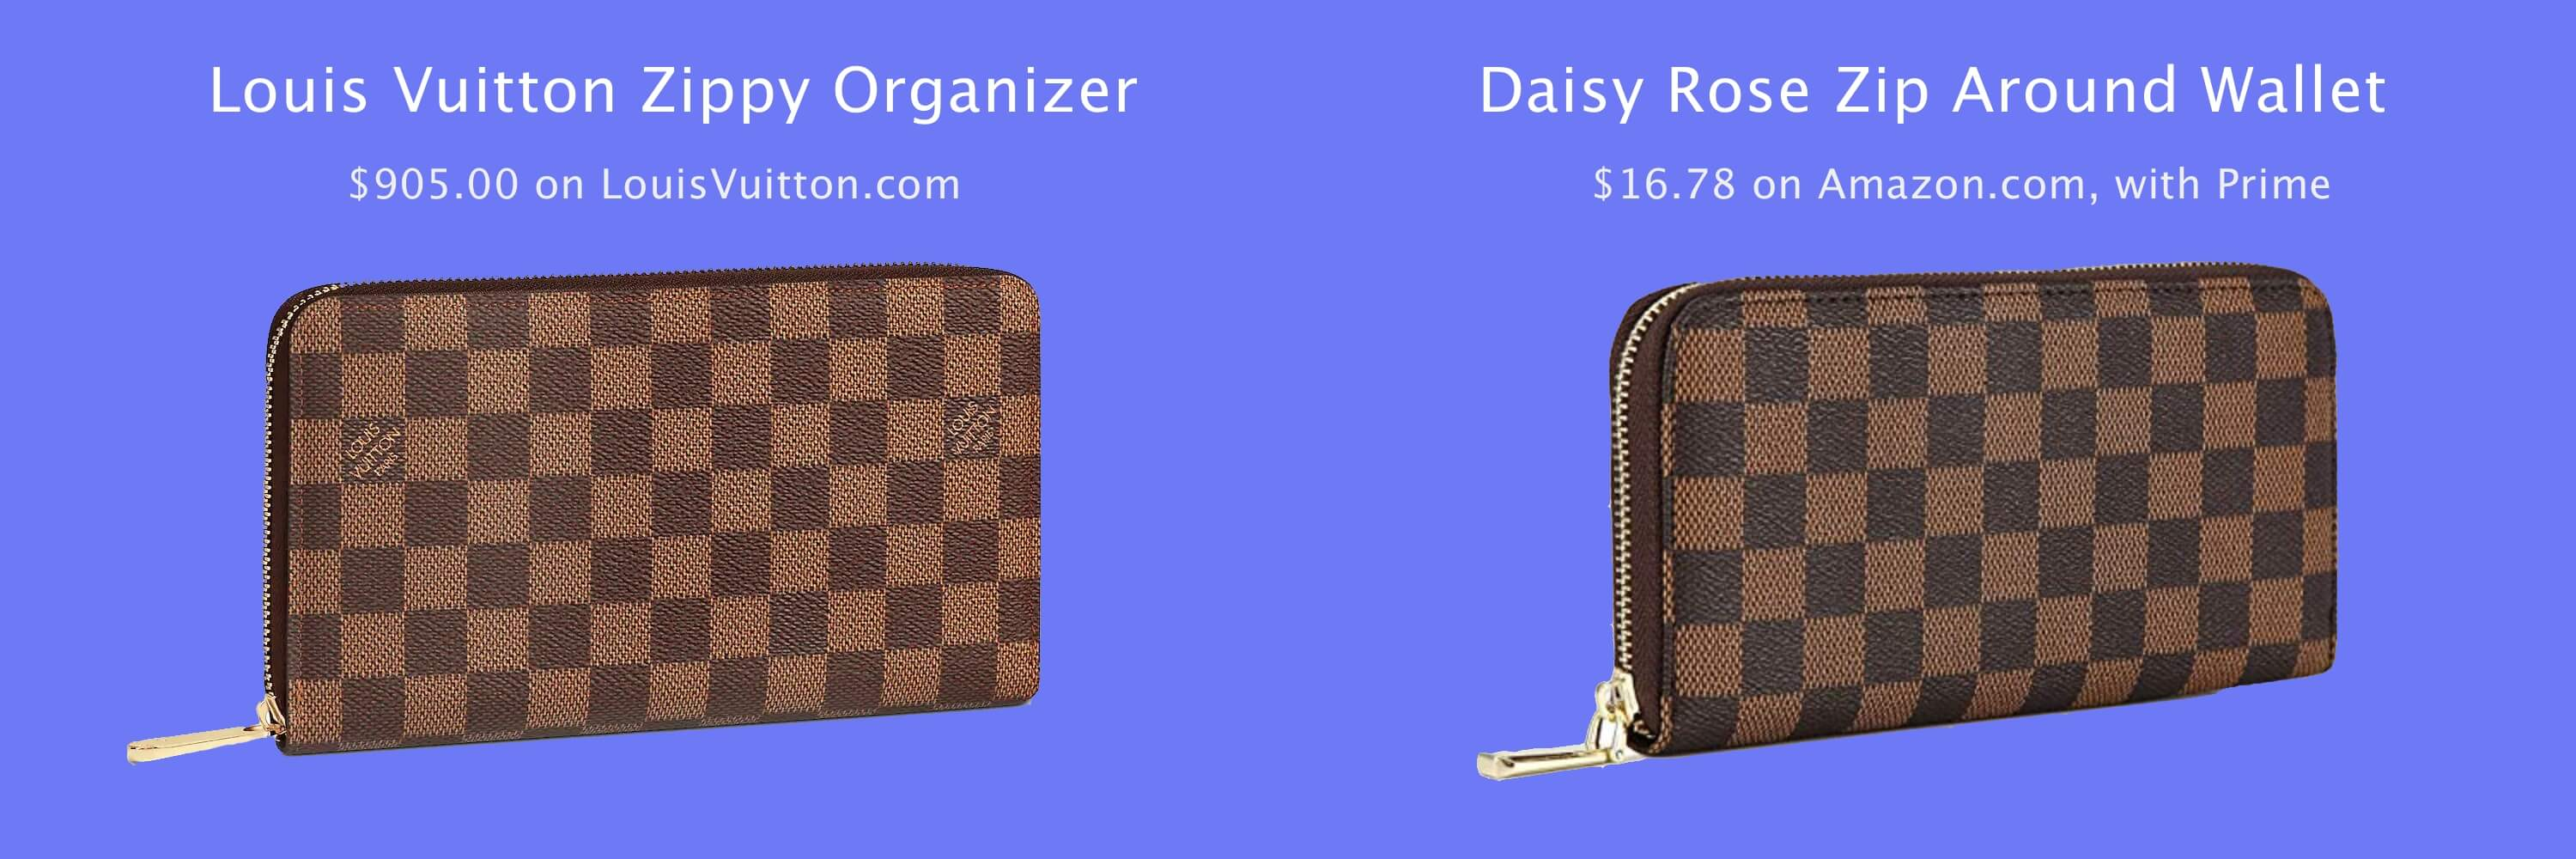 Louis Vuitton vs Daily Rose